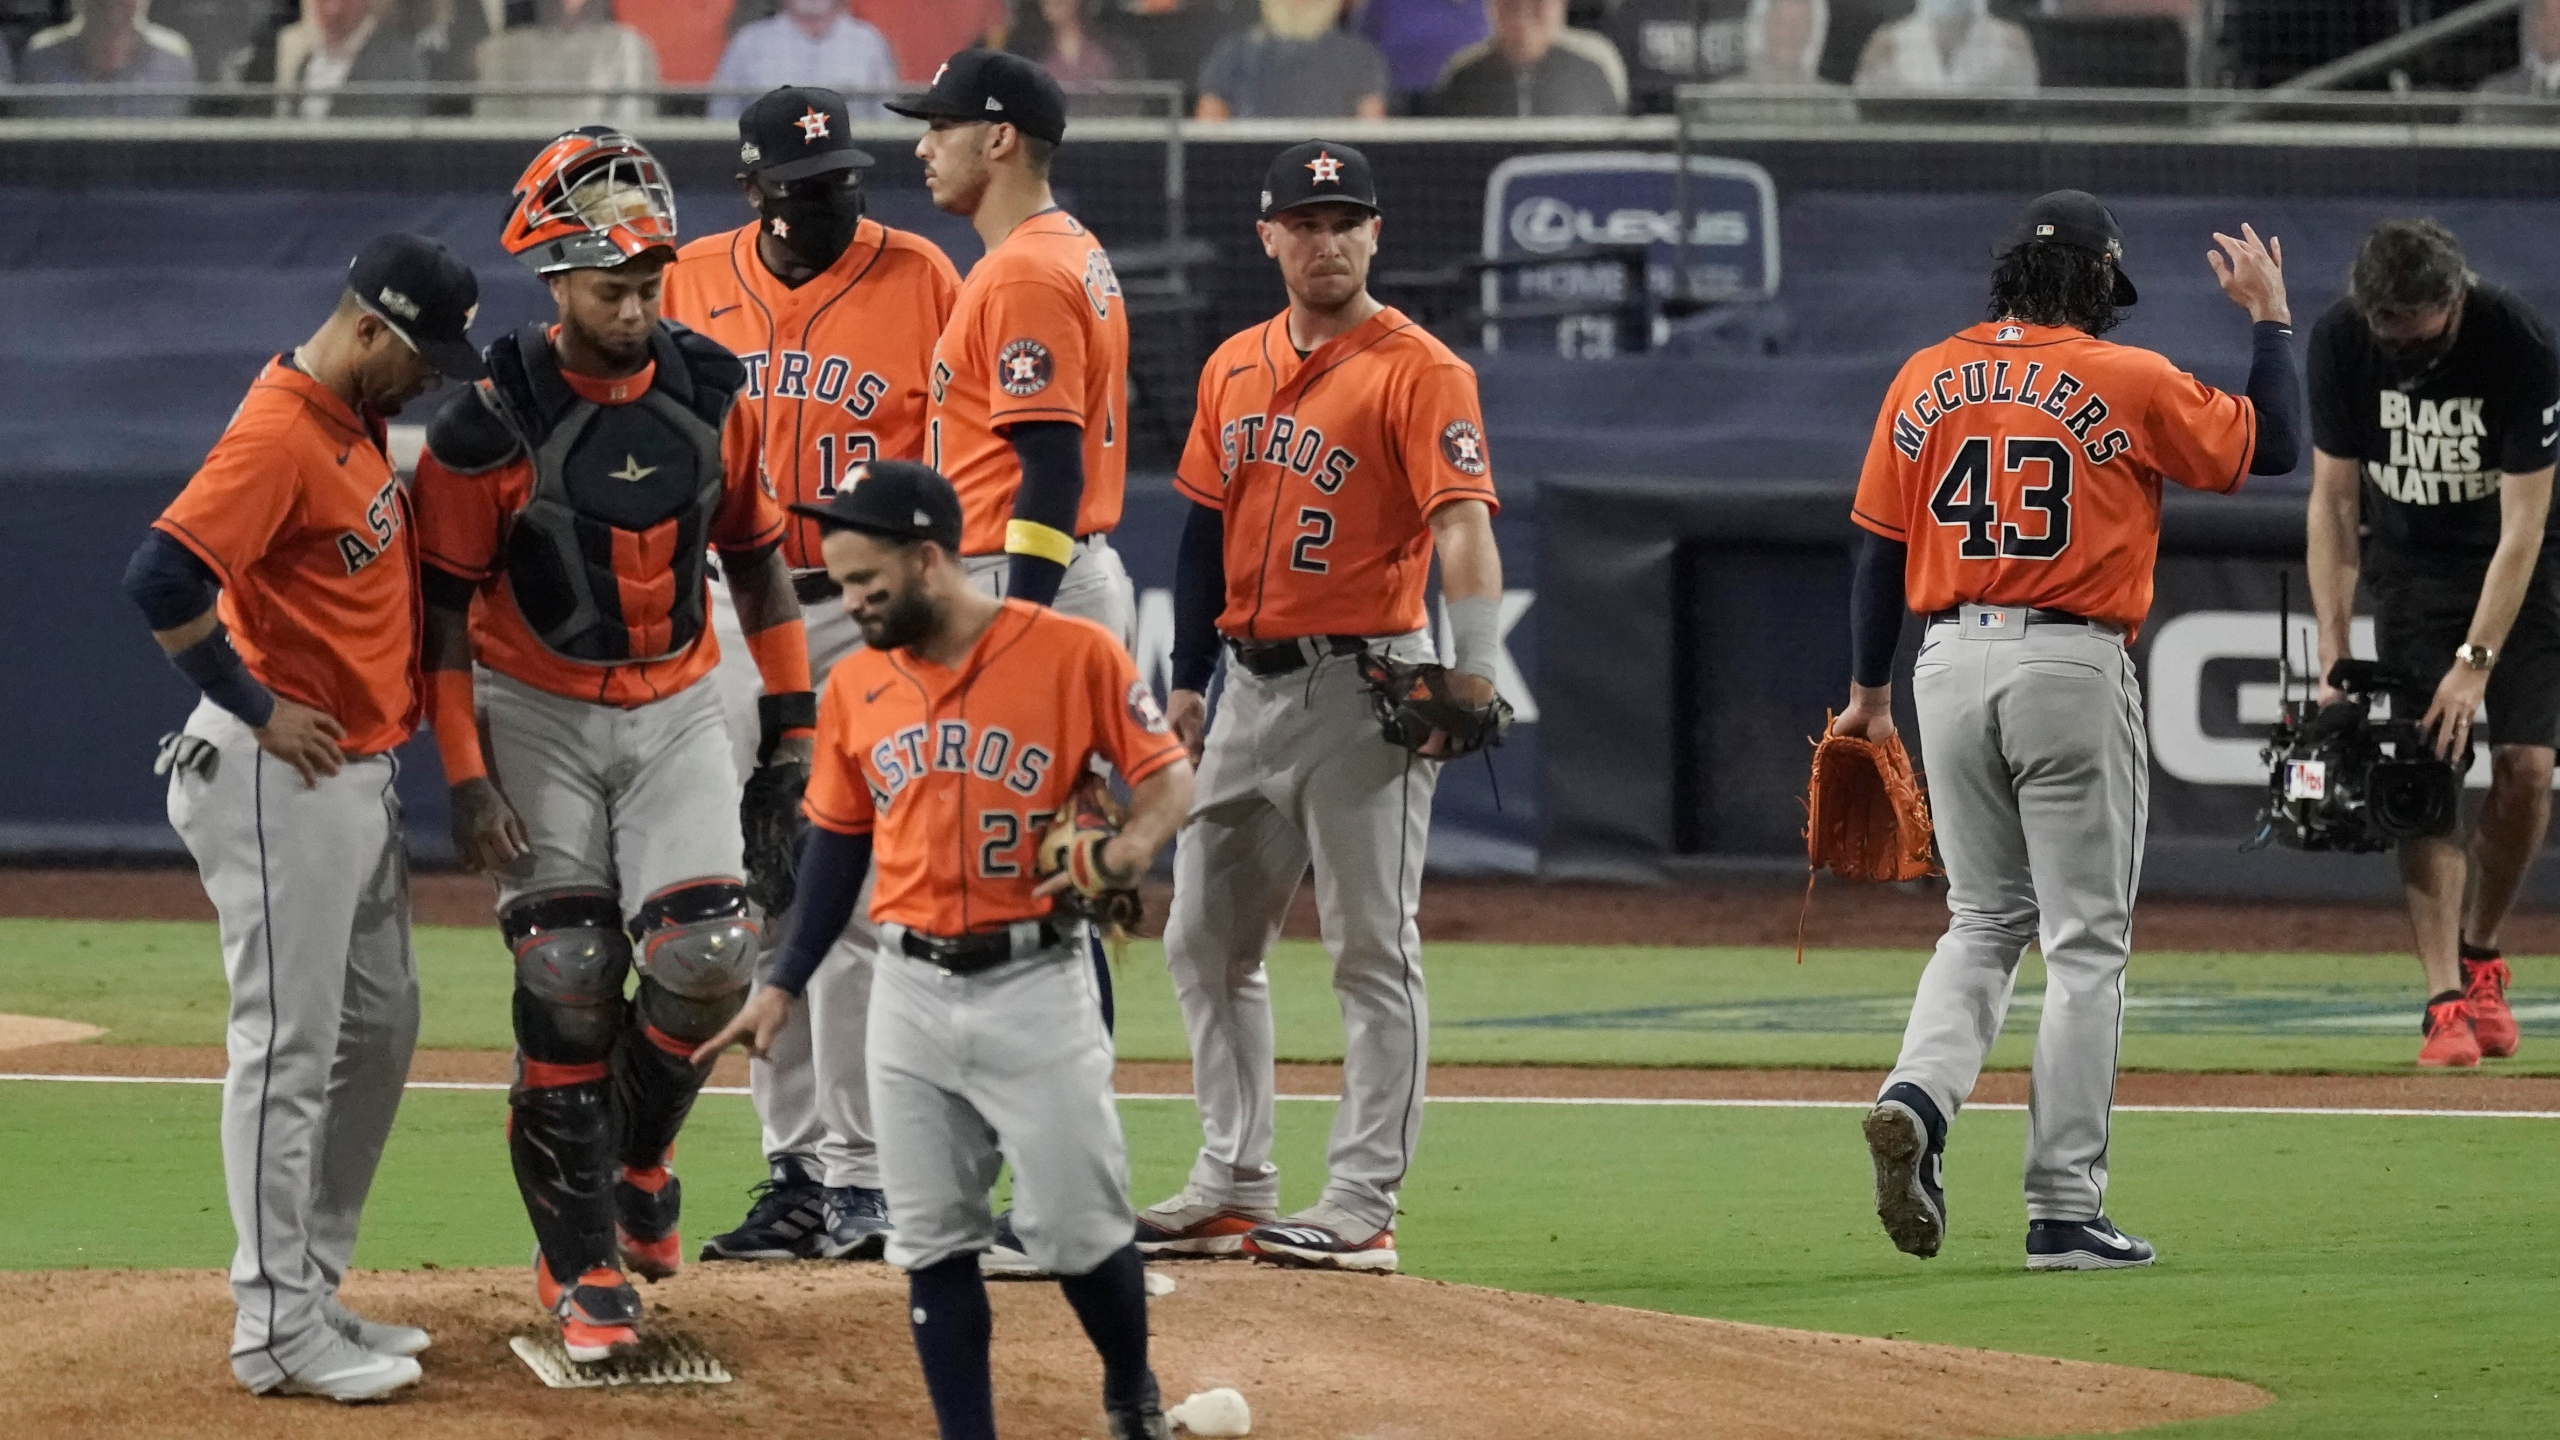 Houston Astros pitcher Lance McCullers Jr. walks off the field after being relieved during the fourth inning in Game 7 of a baseball American League Championship Series against the Tampa Bay Rays, Saturday, Oct. 17, 2020, in San Diego. (AP Photo/Jae C. Hong)